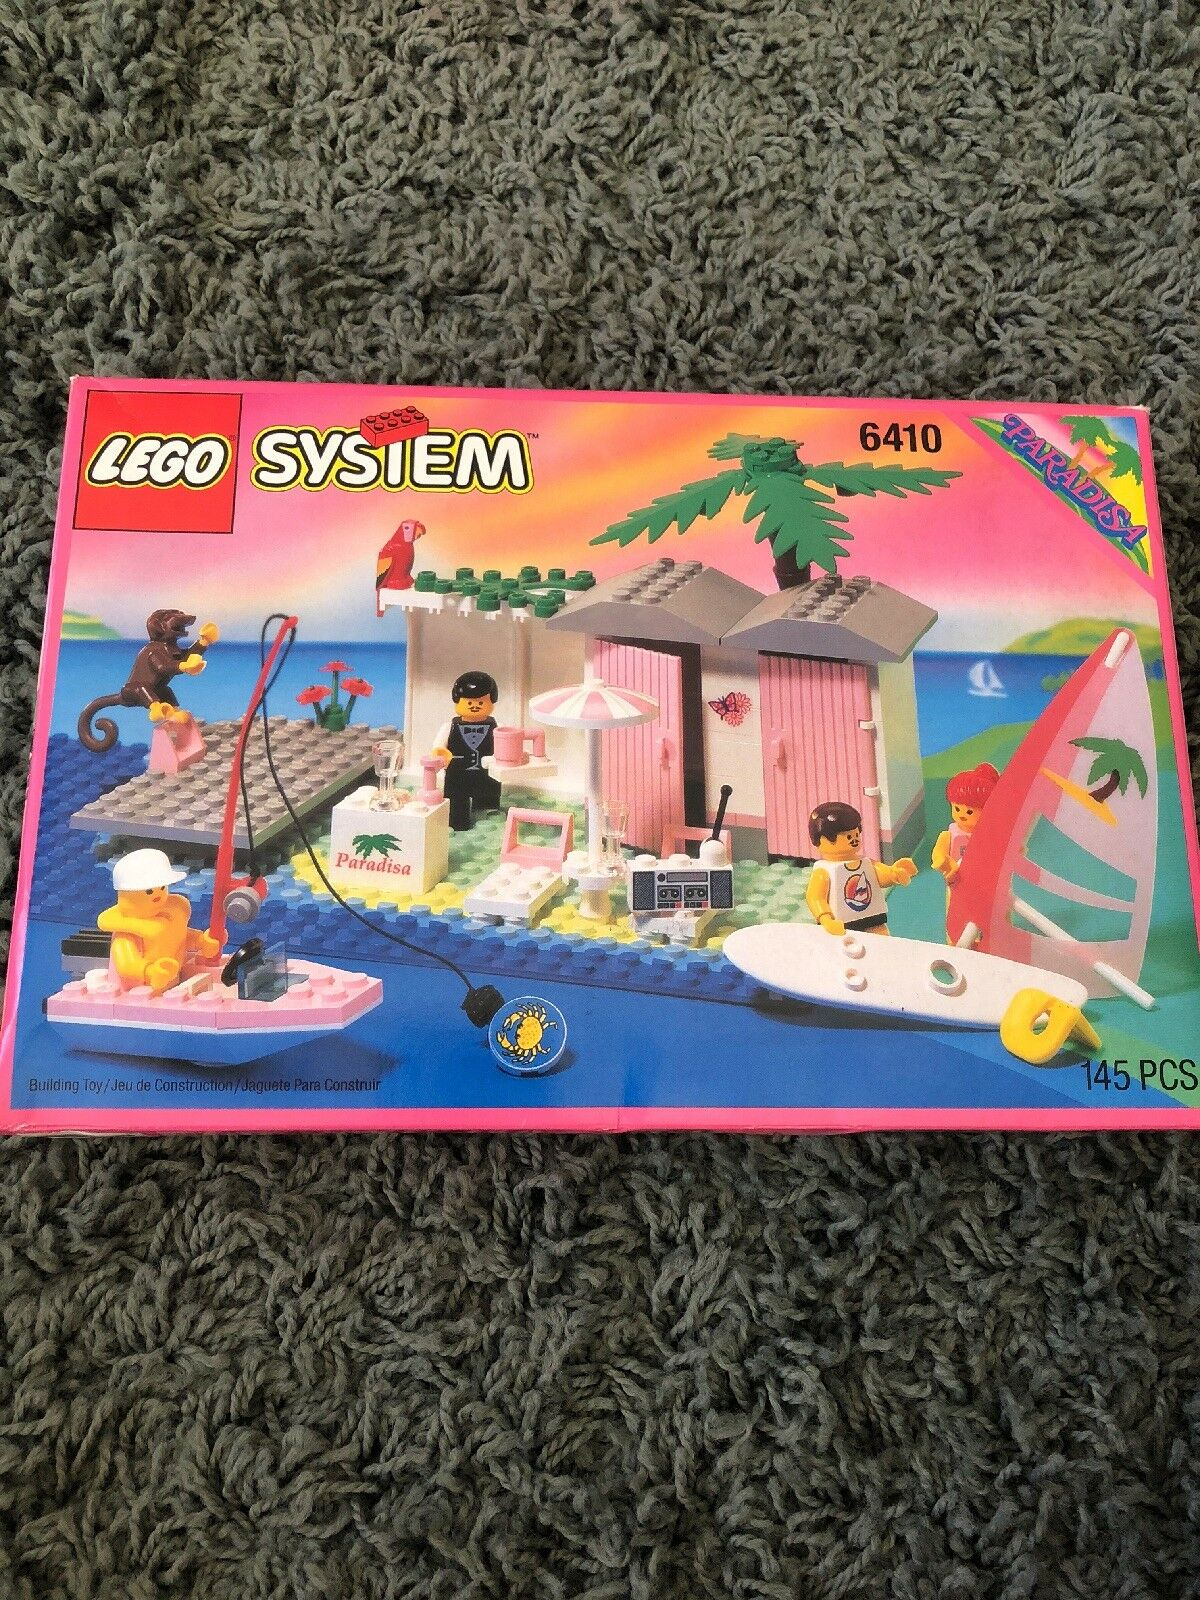 New Factory Sealed LEGO 6410 Paradisa Cabanna Beach Lego set from 1994  Exc cond